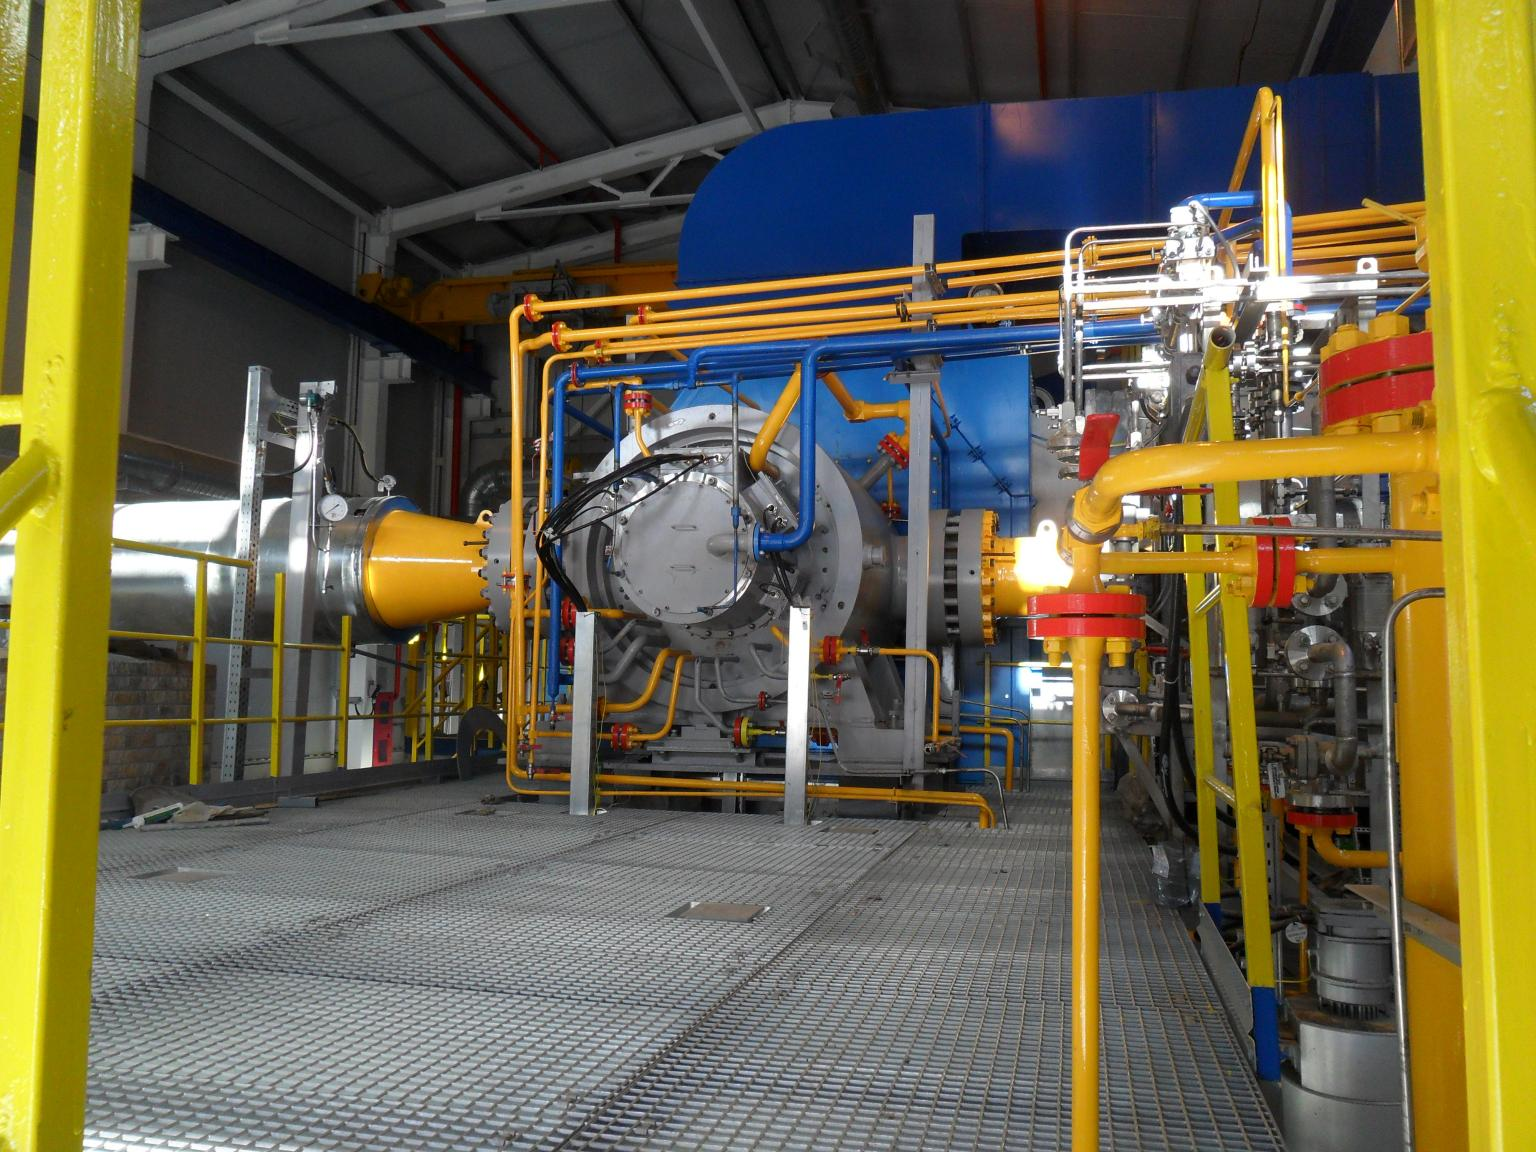 Waukesha Magnetic Bearings provided active magnetic bearing (AMB) systems for four 16 MW gas compressors at Gazprom's Compressor Station Elizavetinskaya-1